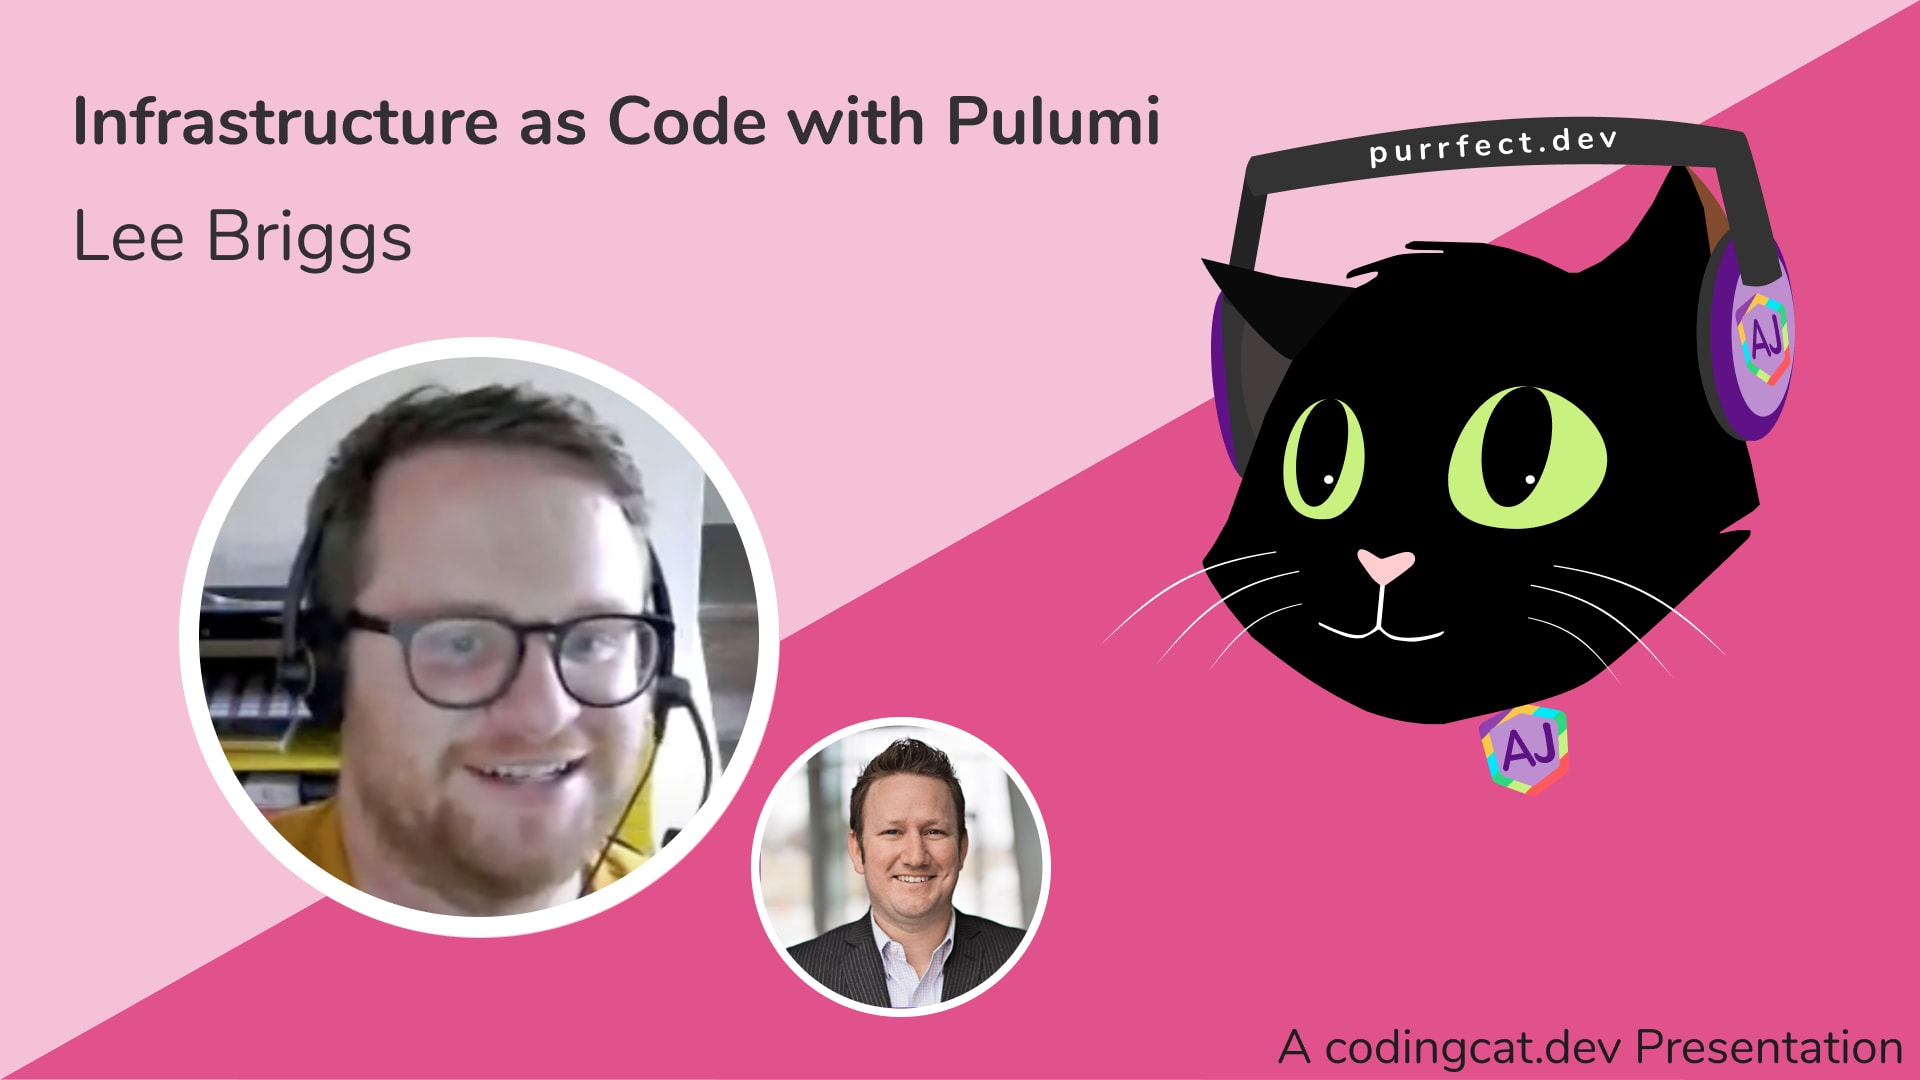 1.1 - Infrastructure as Code with Pulumi